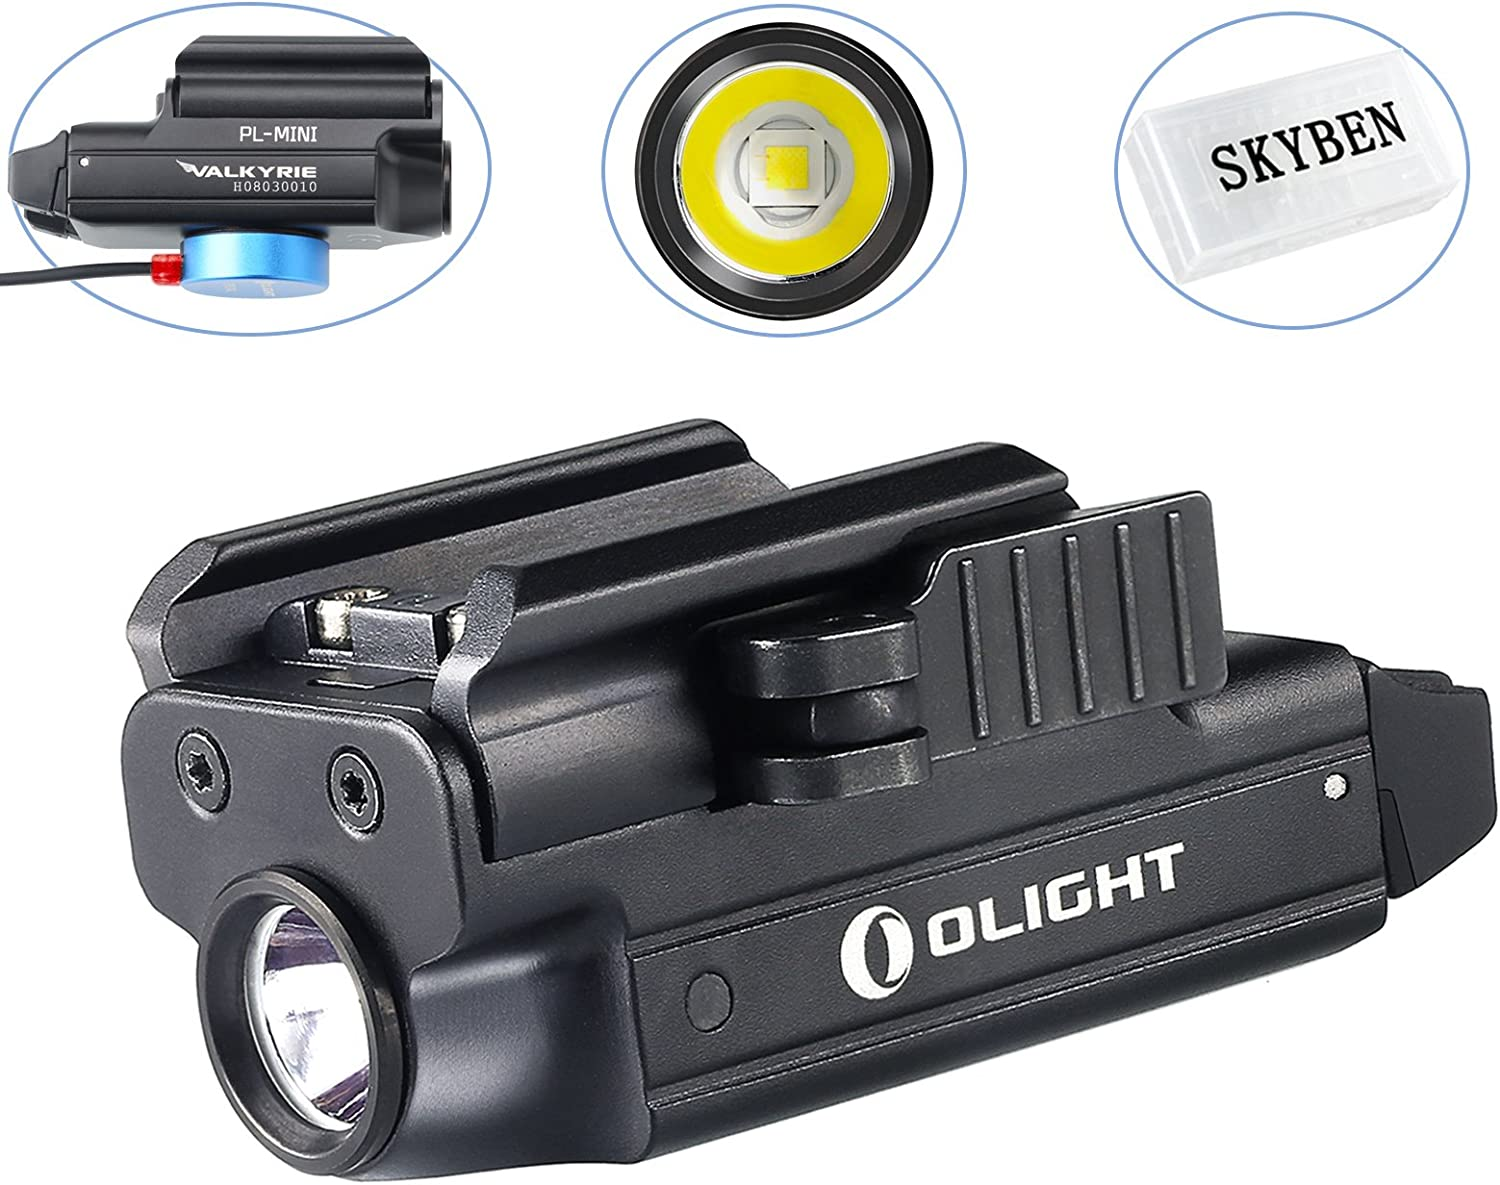 powered by a built-in lithium polymer battery with SKYBEN Accessory Olight PL-MINI Valkyrie 400 Lumens CREE XP-L HI Magnetic USB Rechargeable Weapon Light PL-MINI